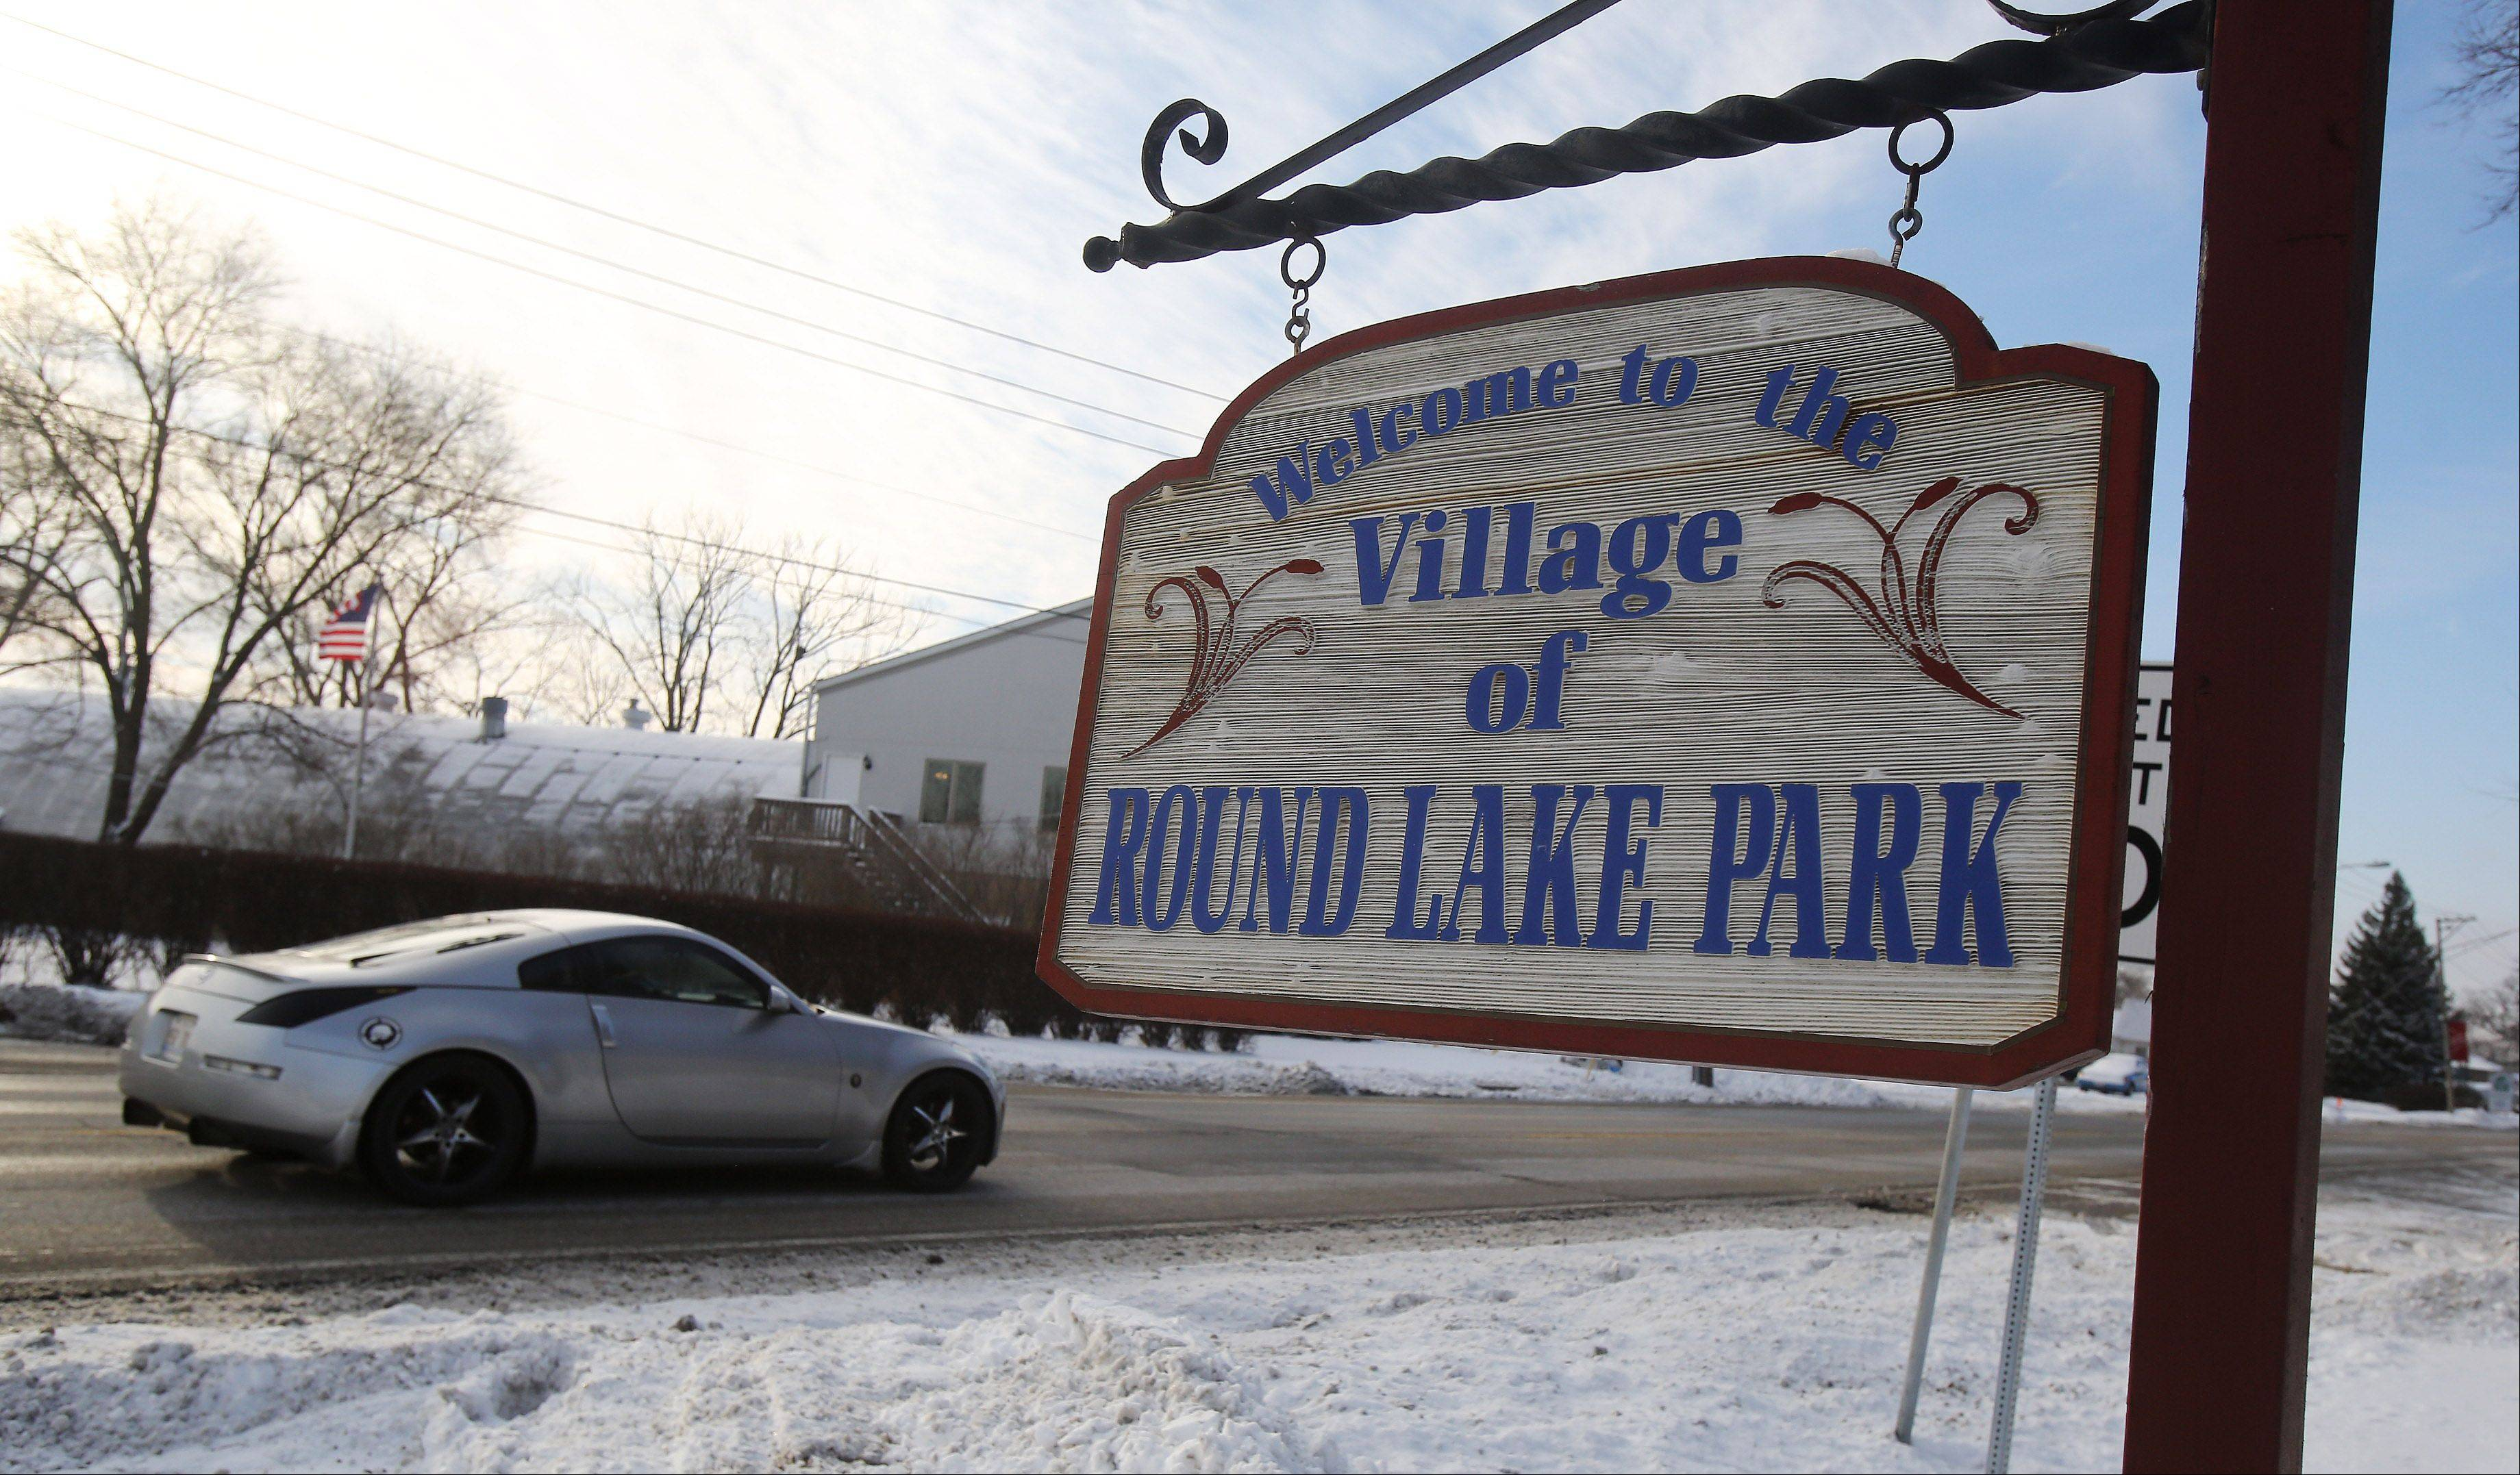 Round Lake Park ranked 99th out of 100 suburbs for per capita Firearm Owners Identification cardholders, a Daily Herald analysis shows.